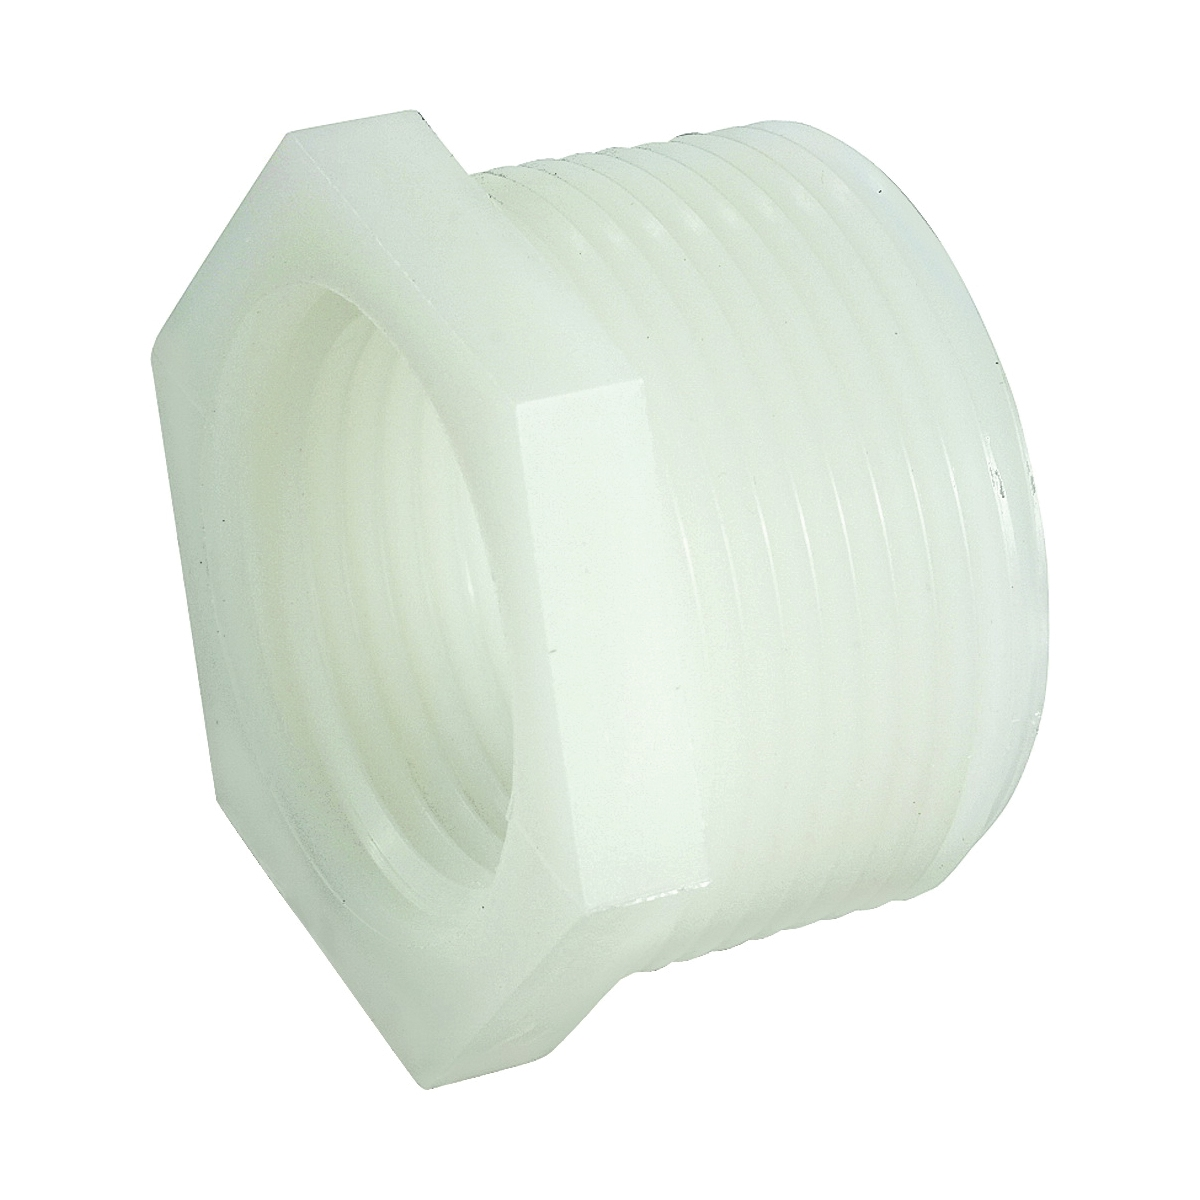 Picture of Anderson Metals 53610-1608 Pipe Reducing Bushing, 1 x 1/2 in, Male x Female Thread, 150 psi Pressure